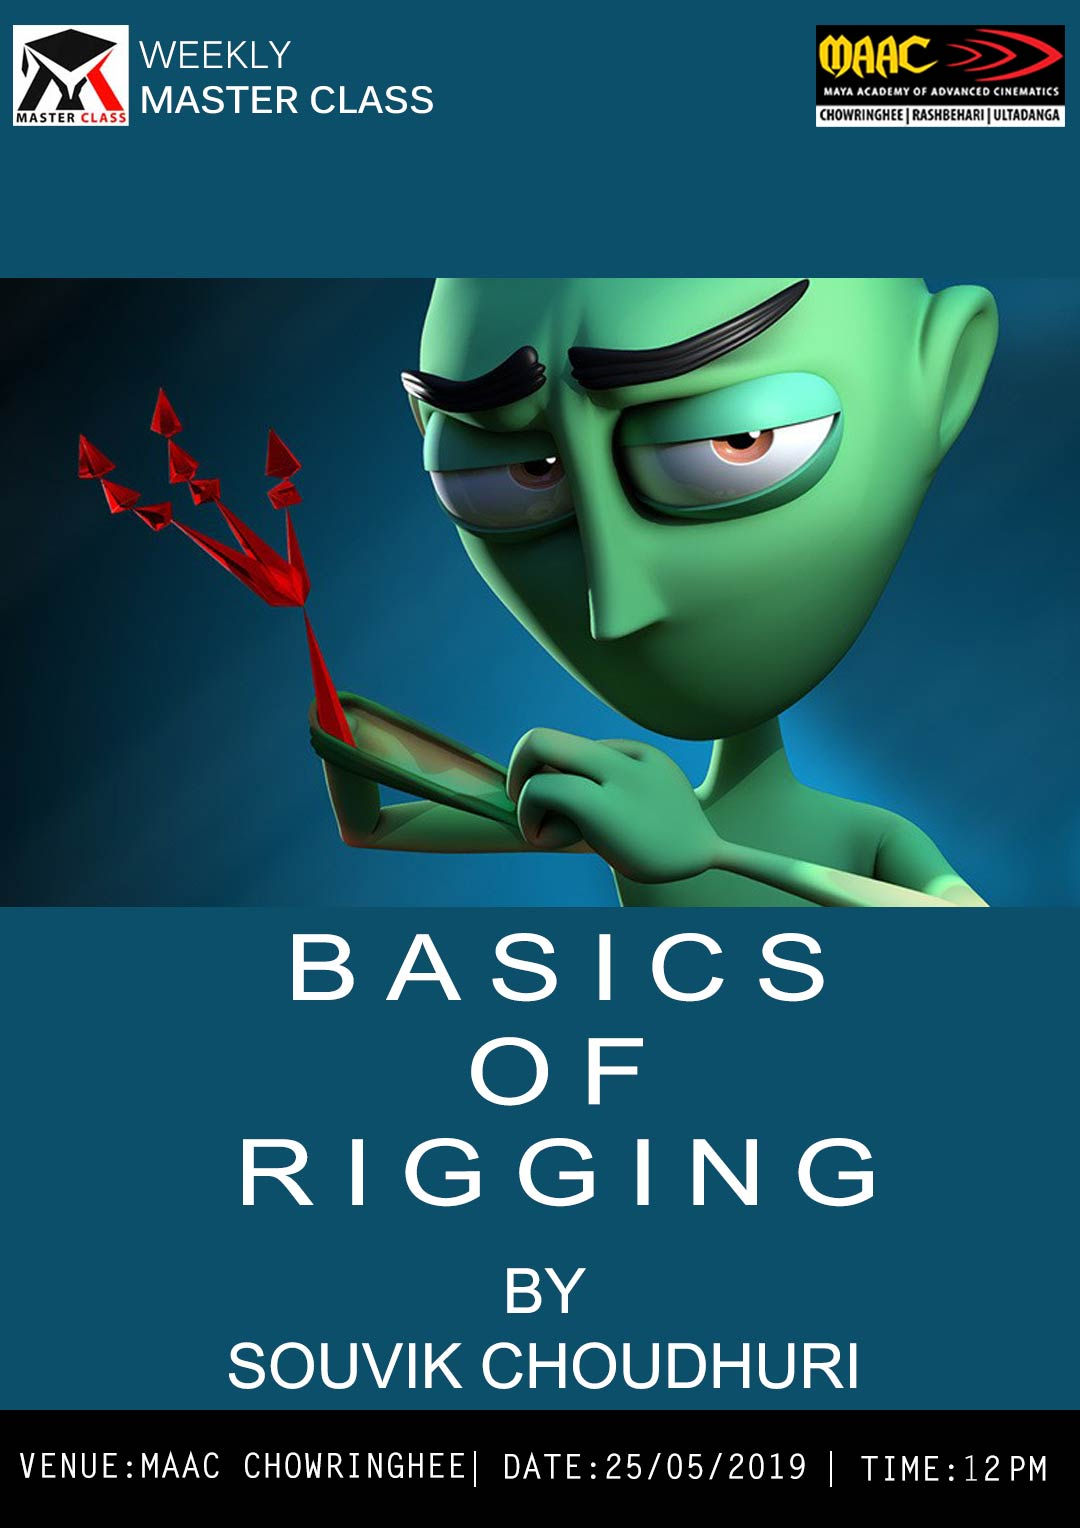 Weekly Master Class on Basics Of Rigging